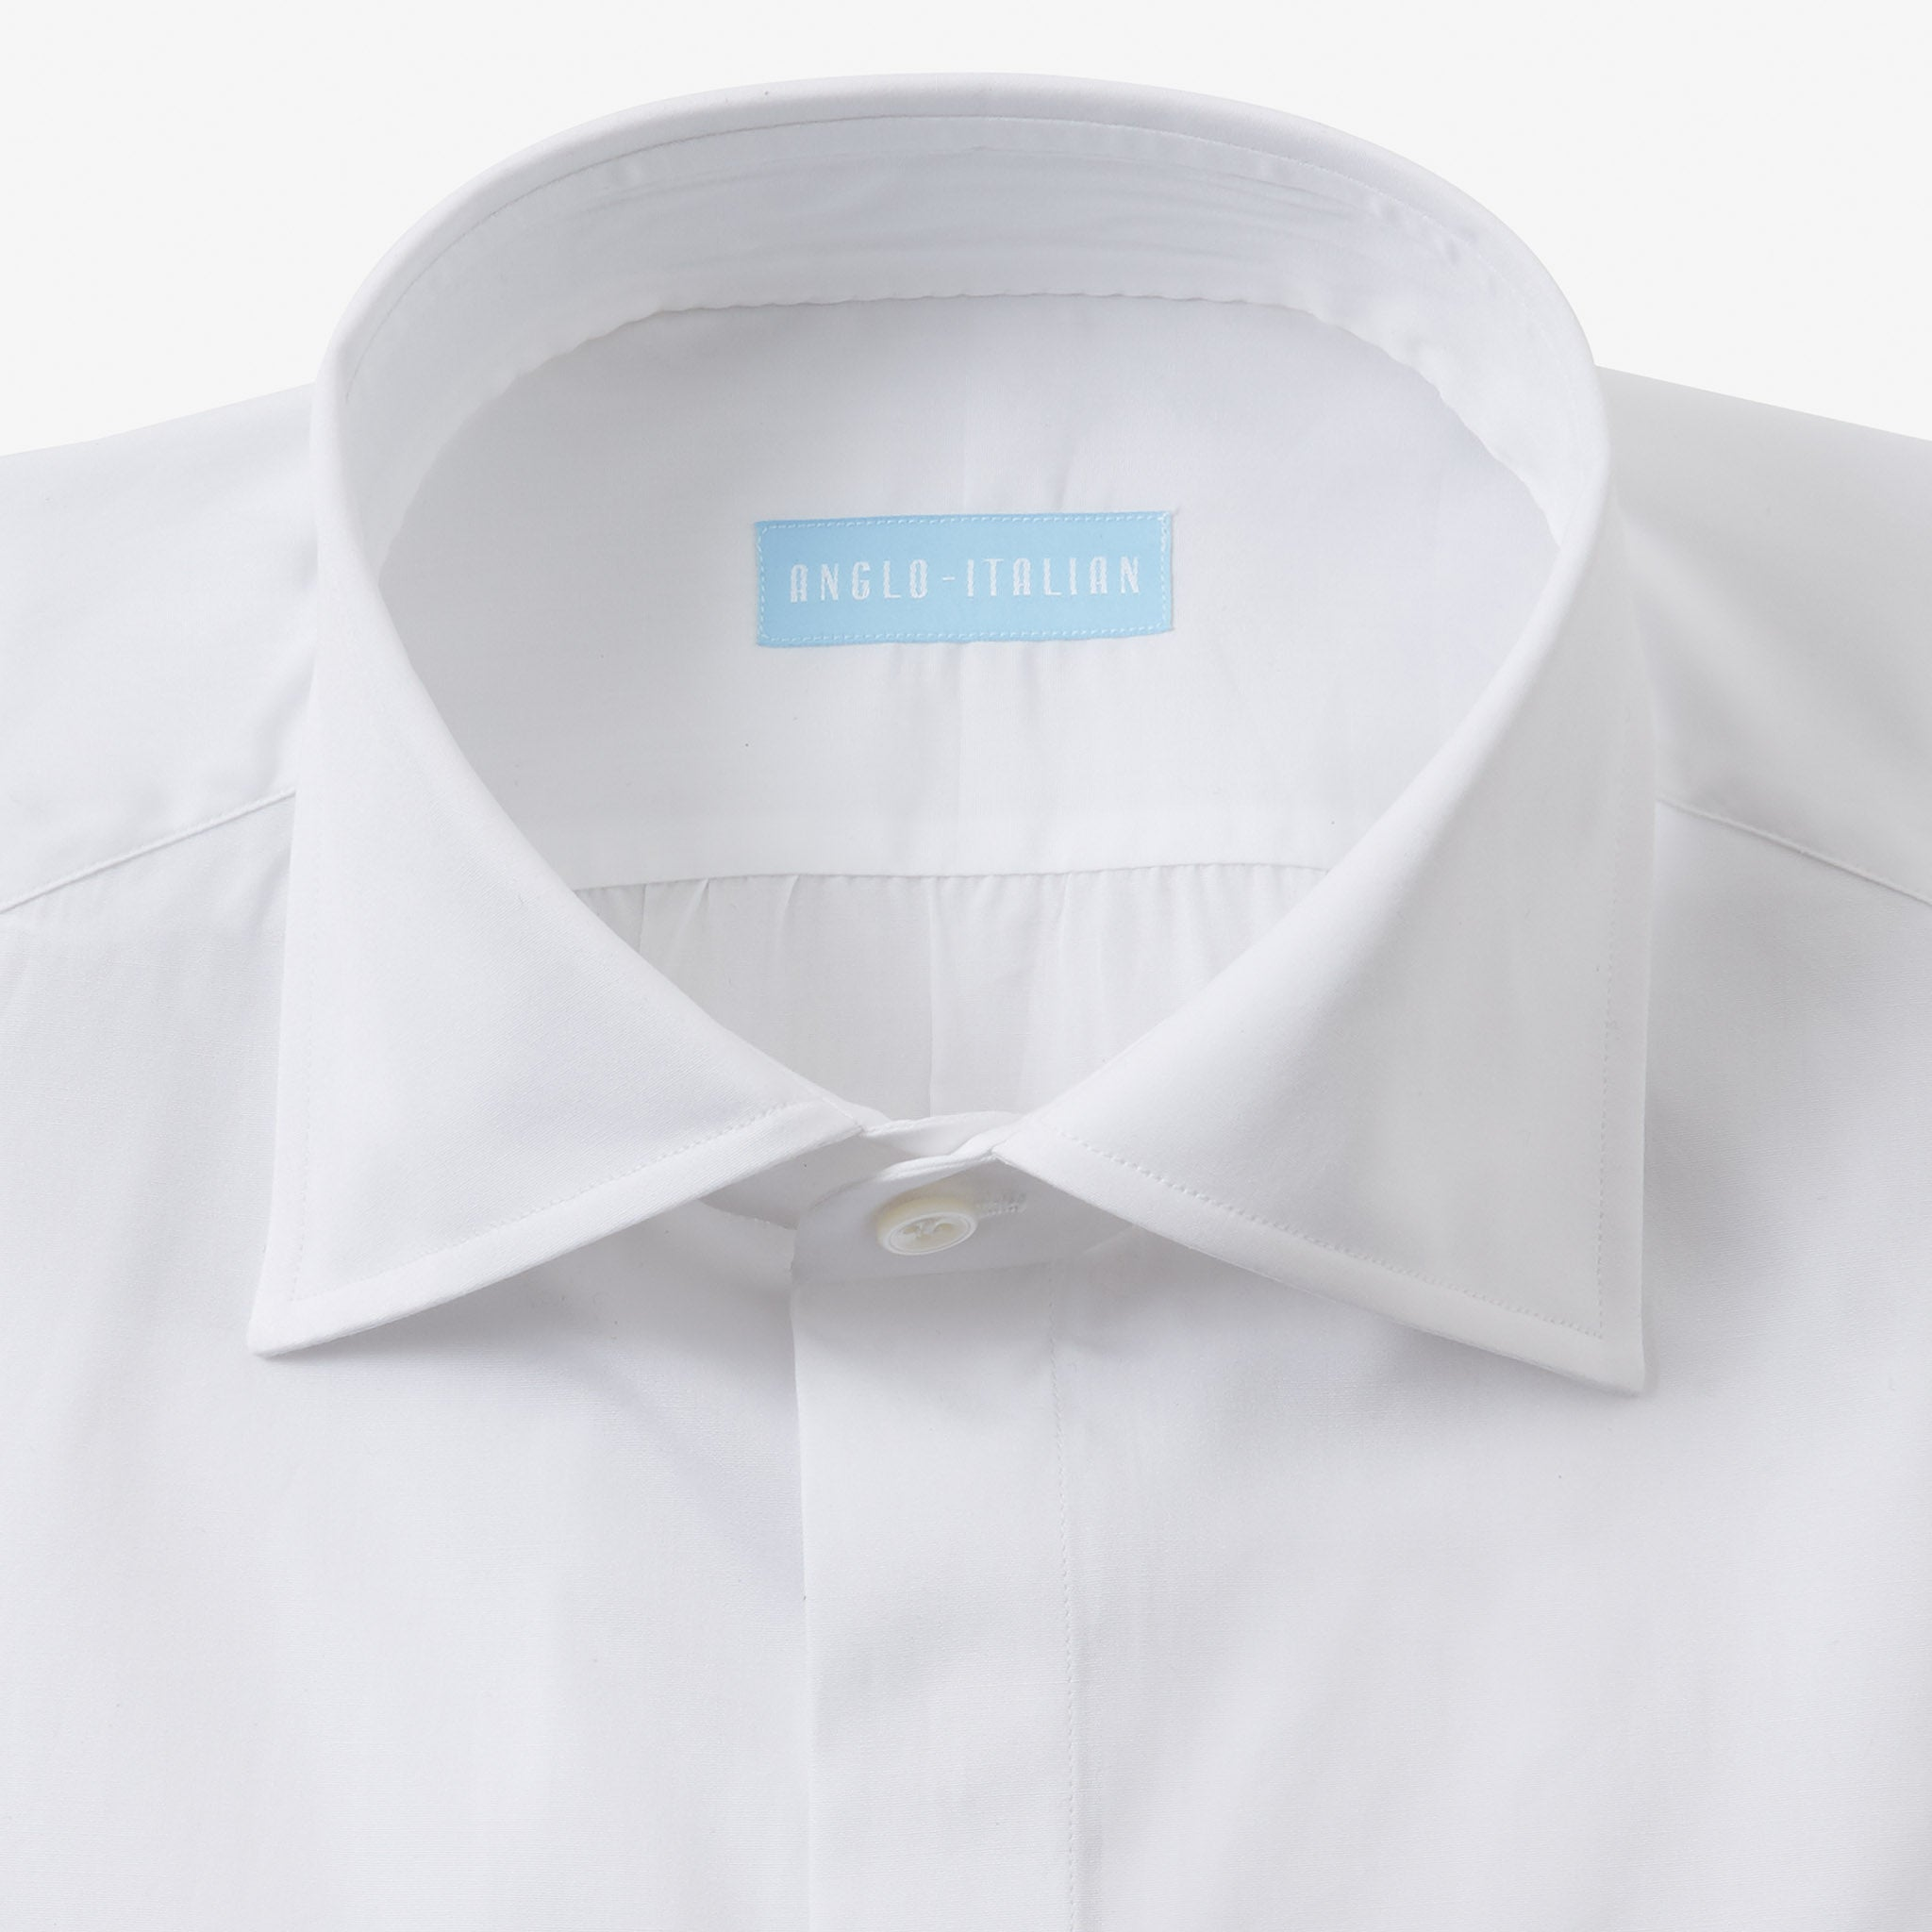 Spread Collar Shirt Cotton White Covered Placket